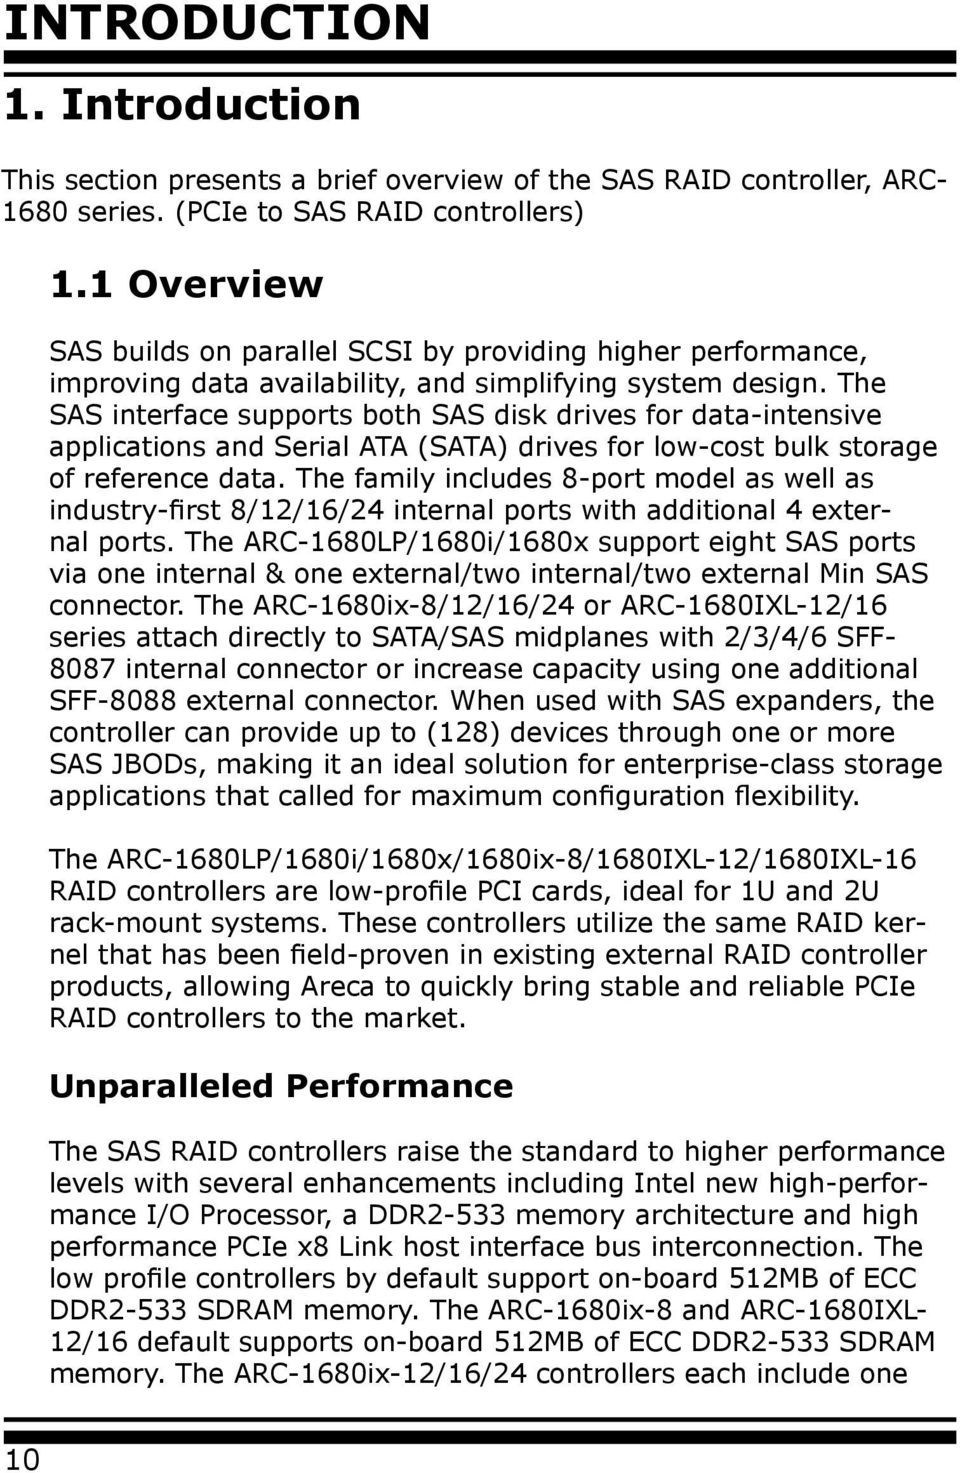 The SAS interface supports both SAS disk drives for data-intensive applications and Serial ATA (SATA) drives for low-cost bulk storage of reference data.